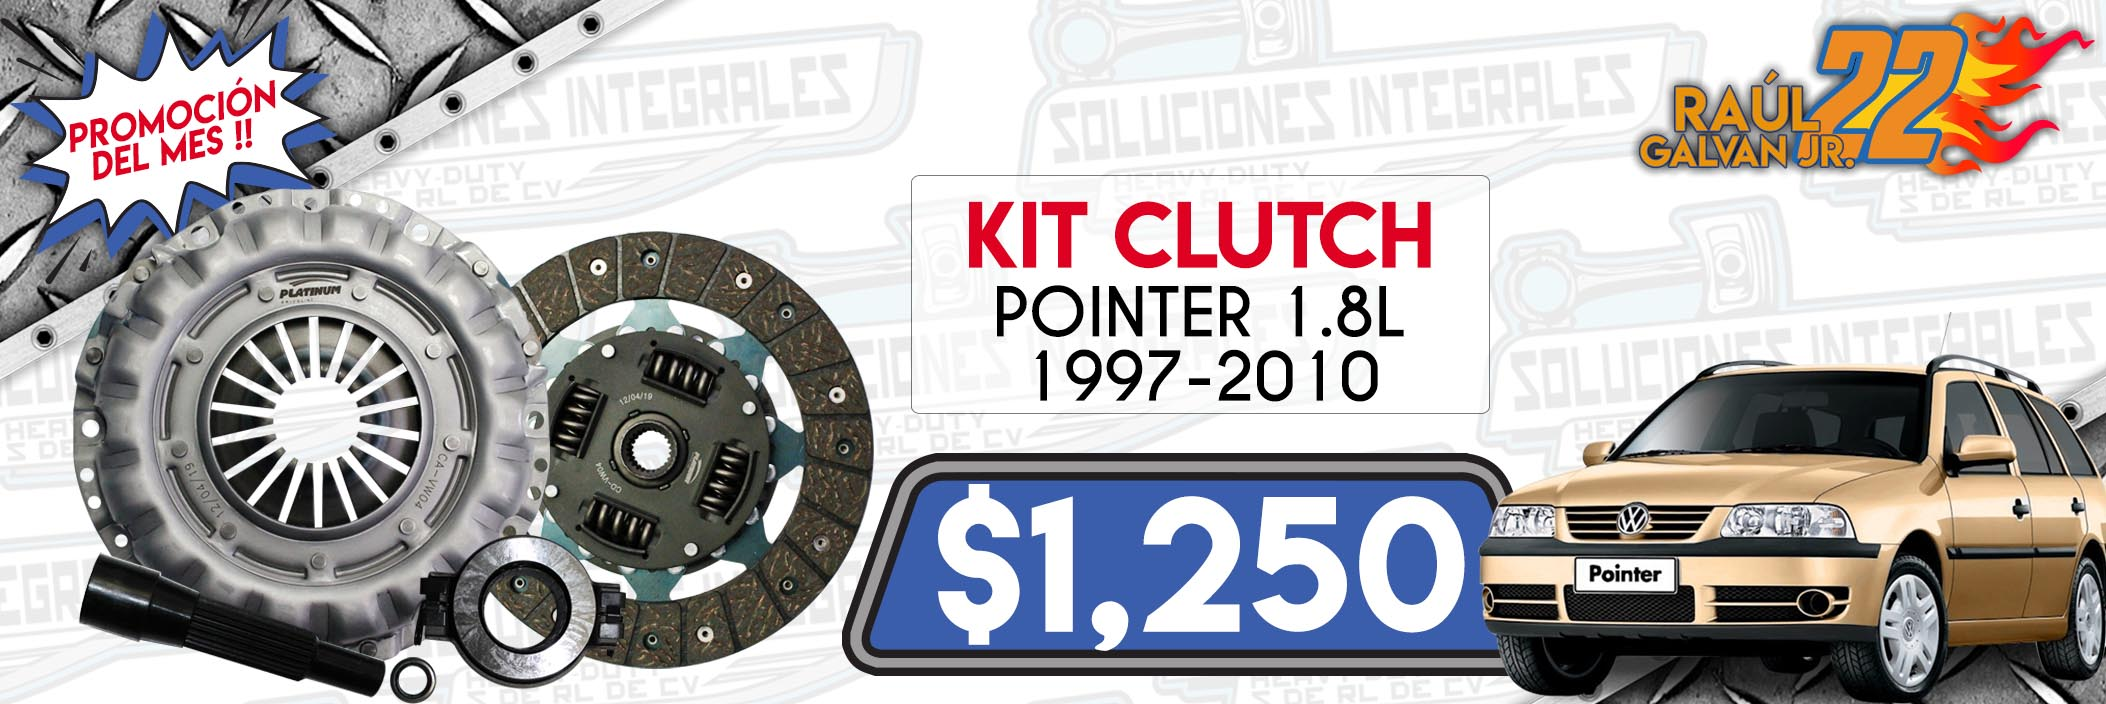 kit clutch pointer 1.8L 1997-2010